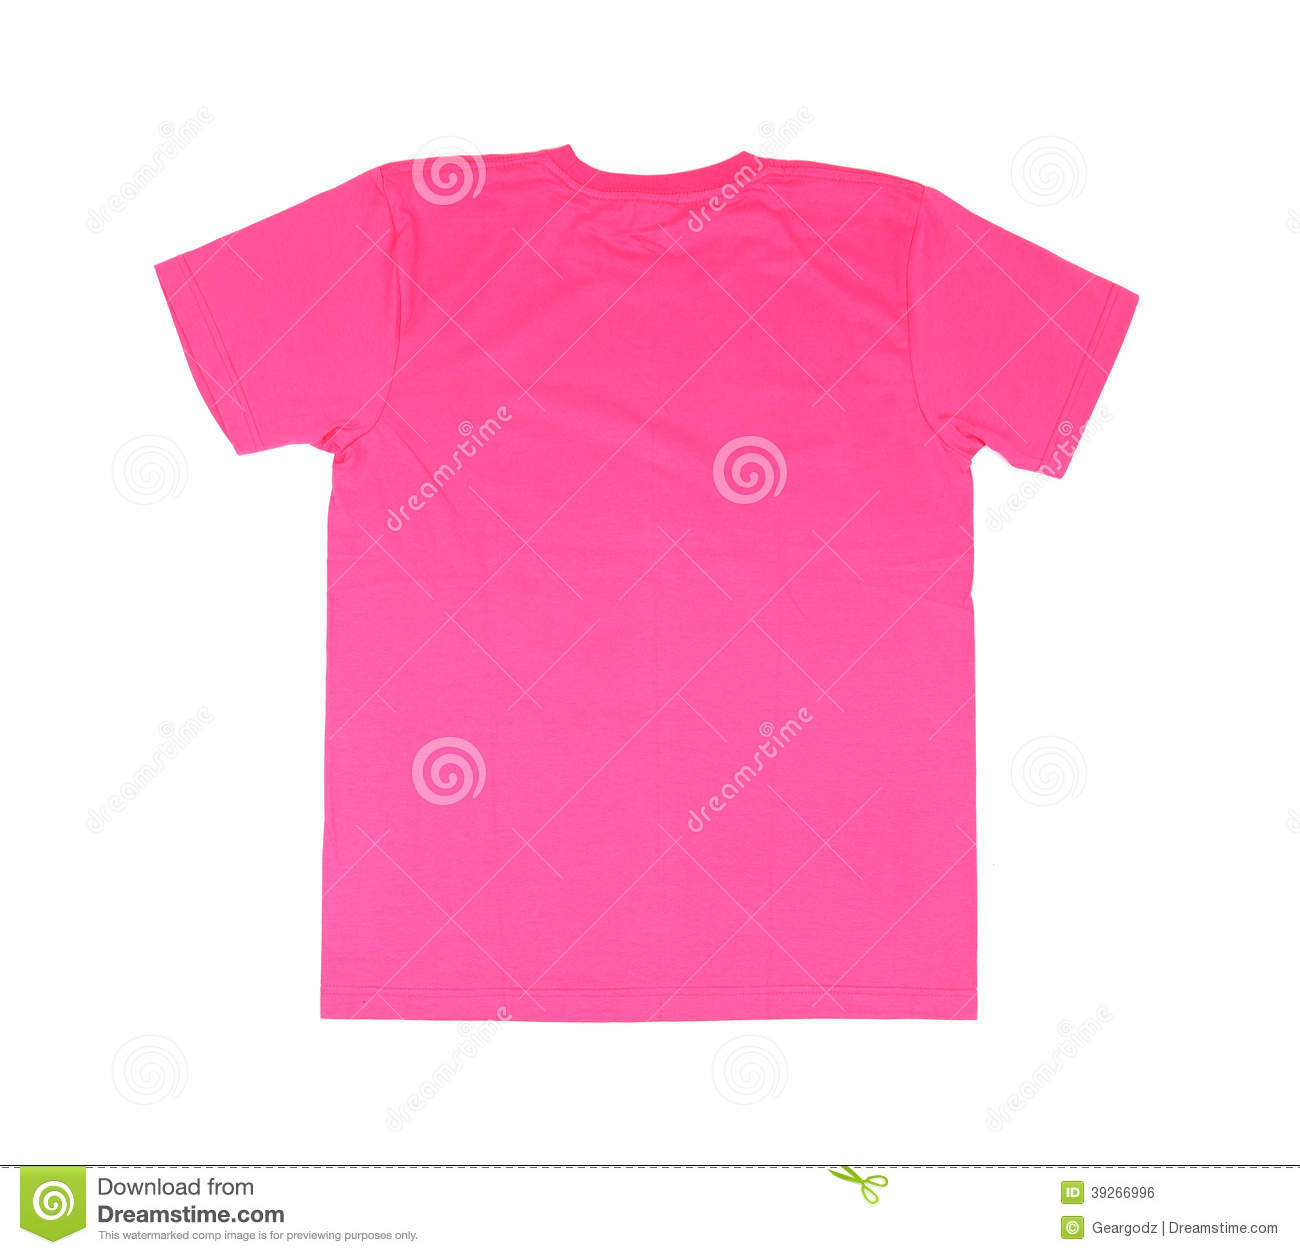 T shirt template stock photo image 39266996 for Pink t shirt template